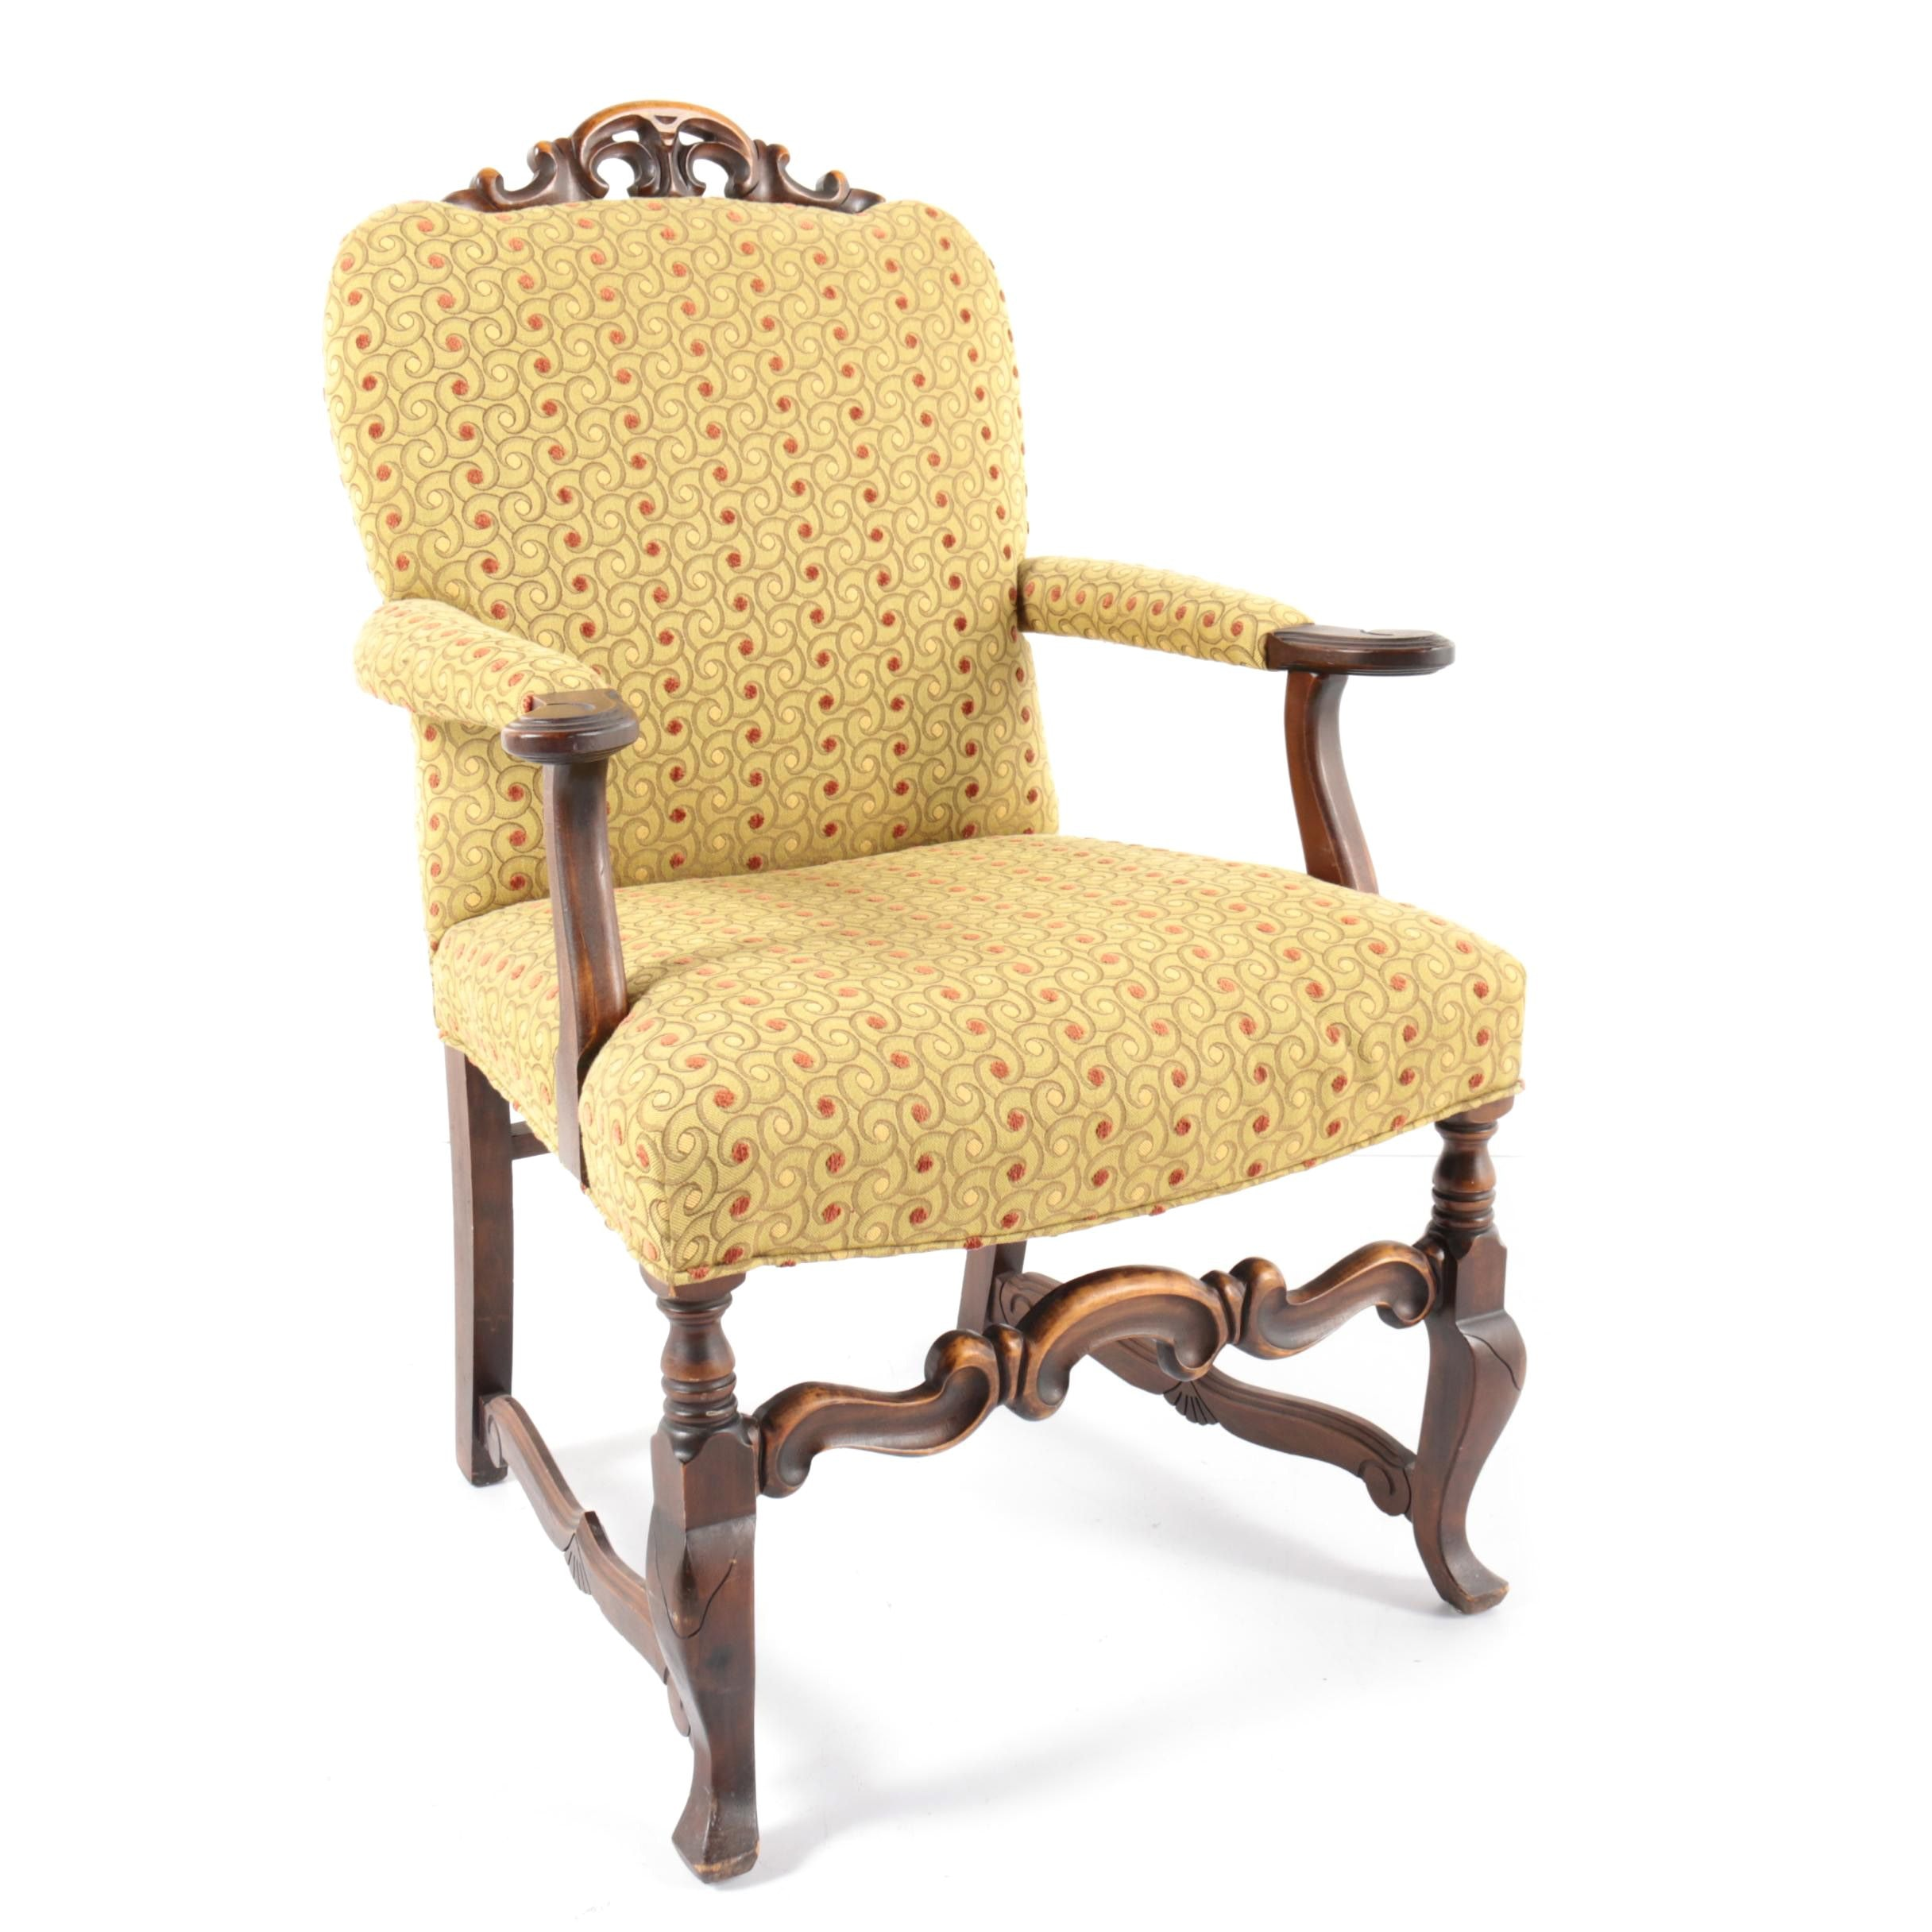 Louis XIV Style Upholstered Armchair